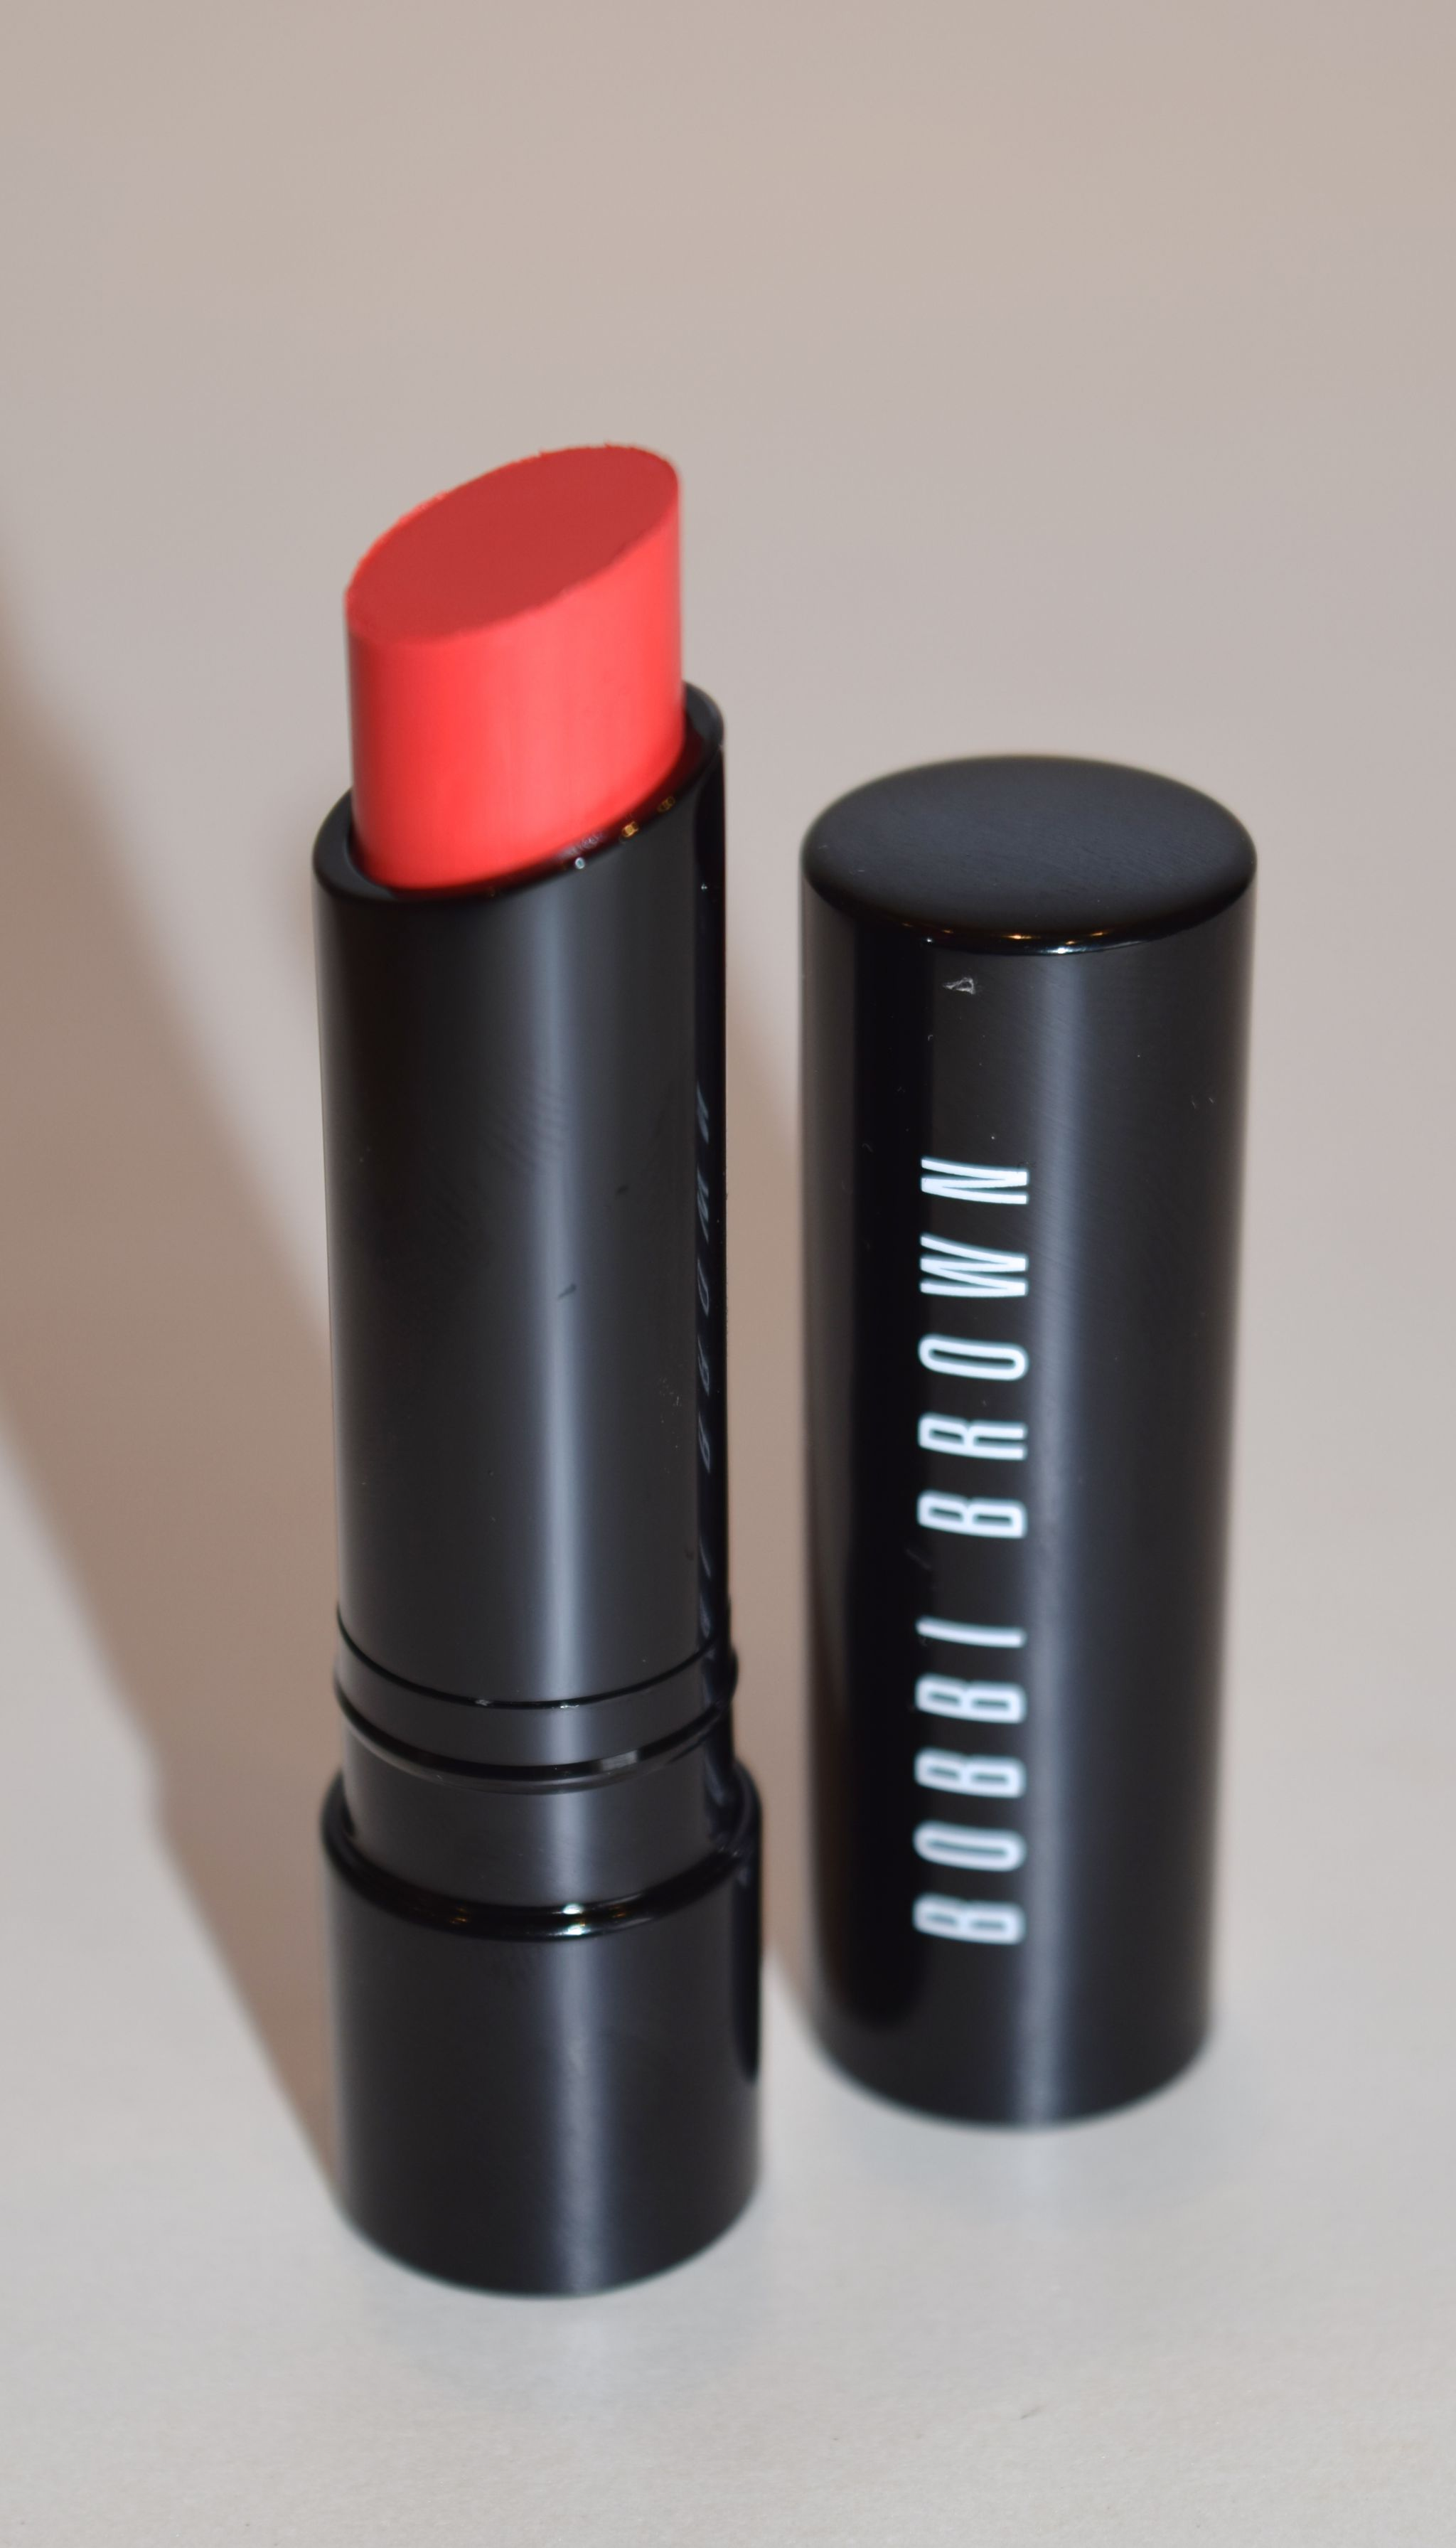 Bobbi Brown Sheer Lipstick Orange